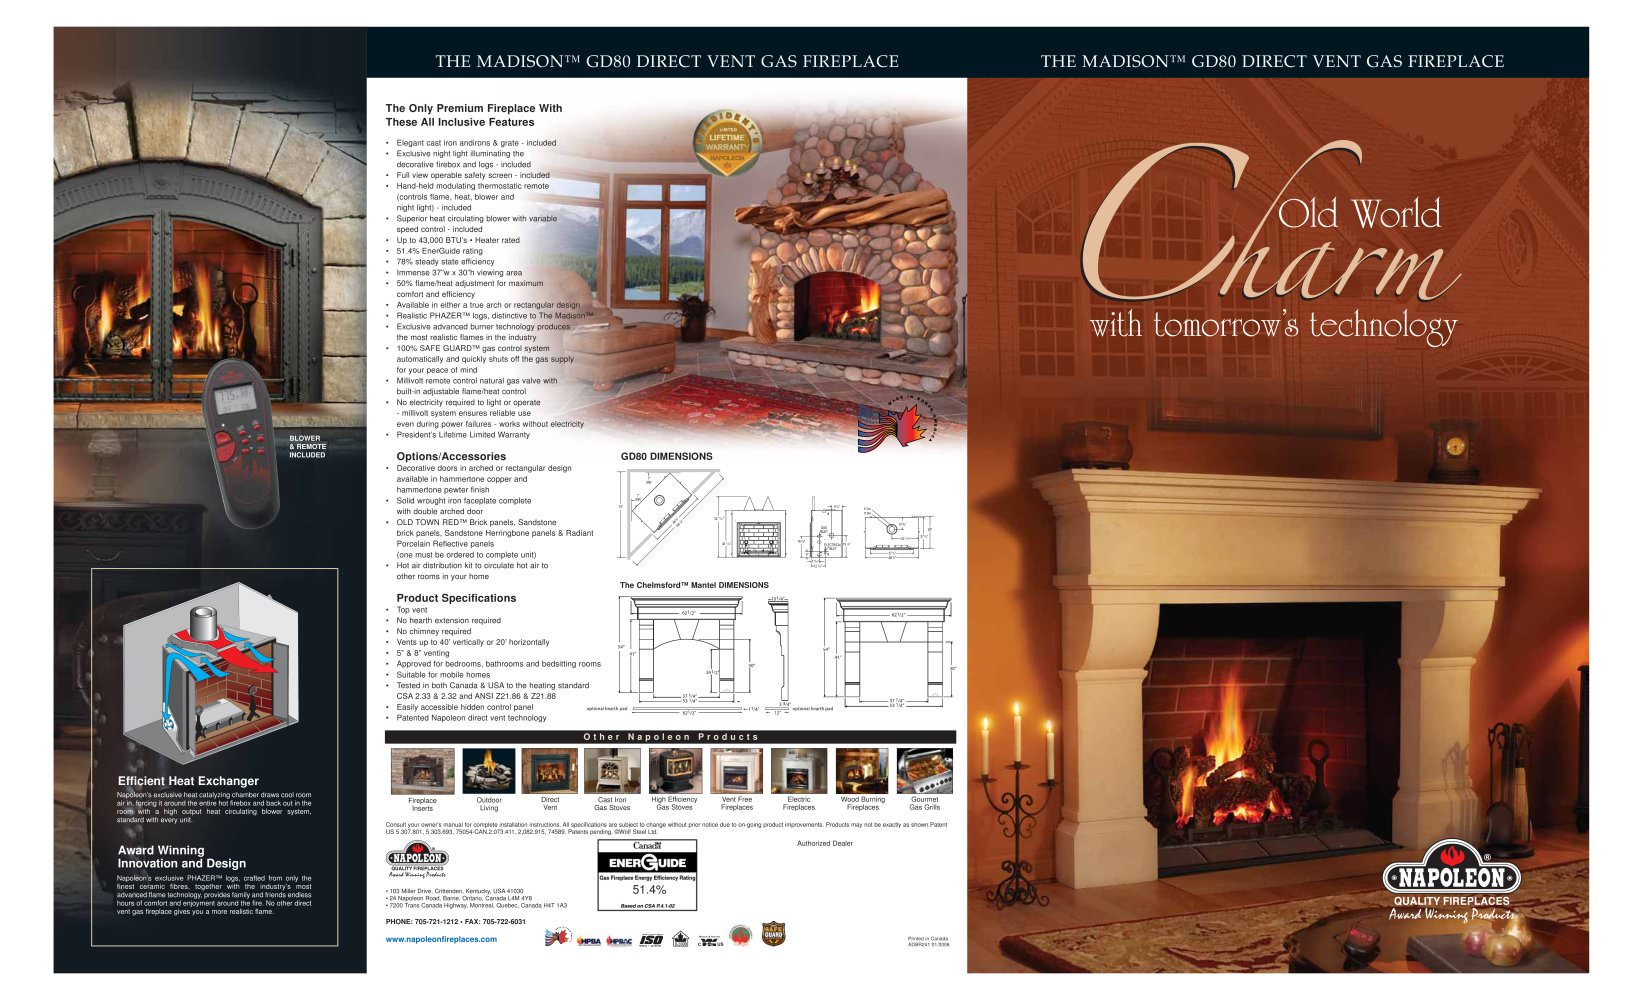 Efficiency of gas fireplace - Madison Direct Vent Gas Fireplace 1 2 Pages